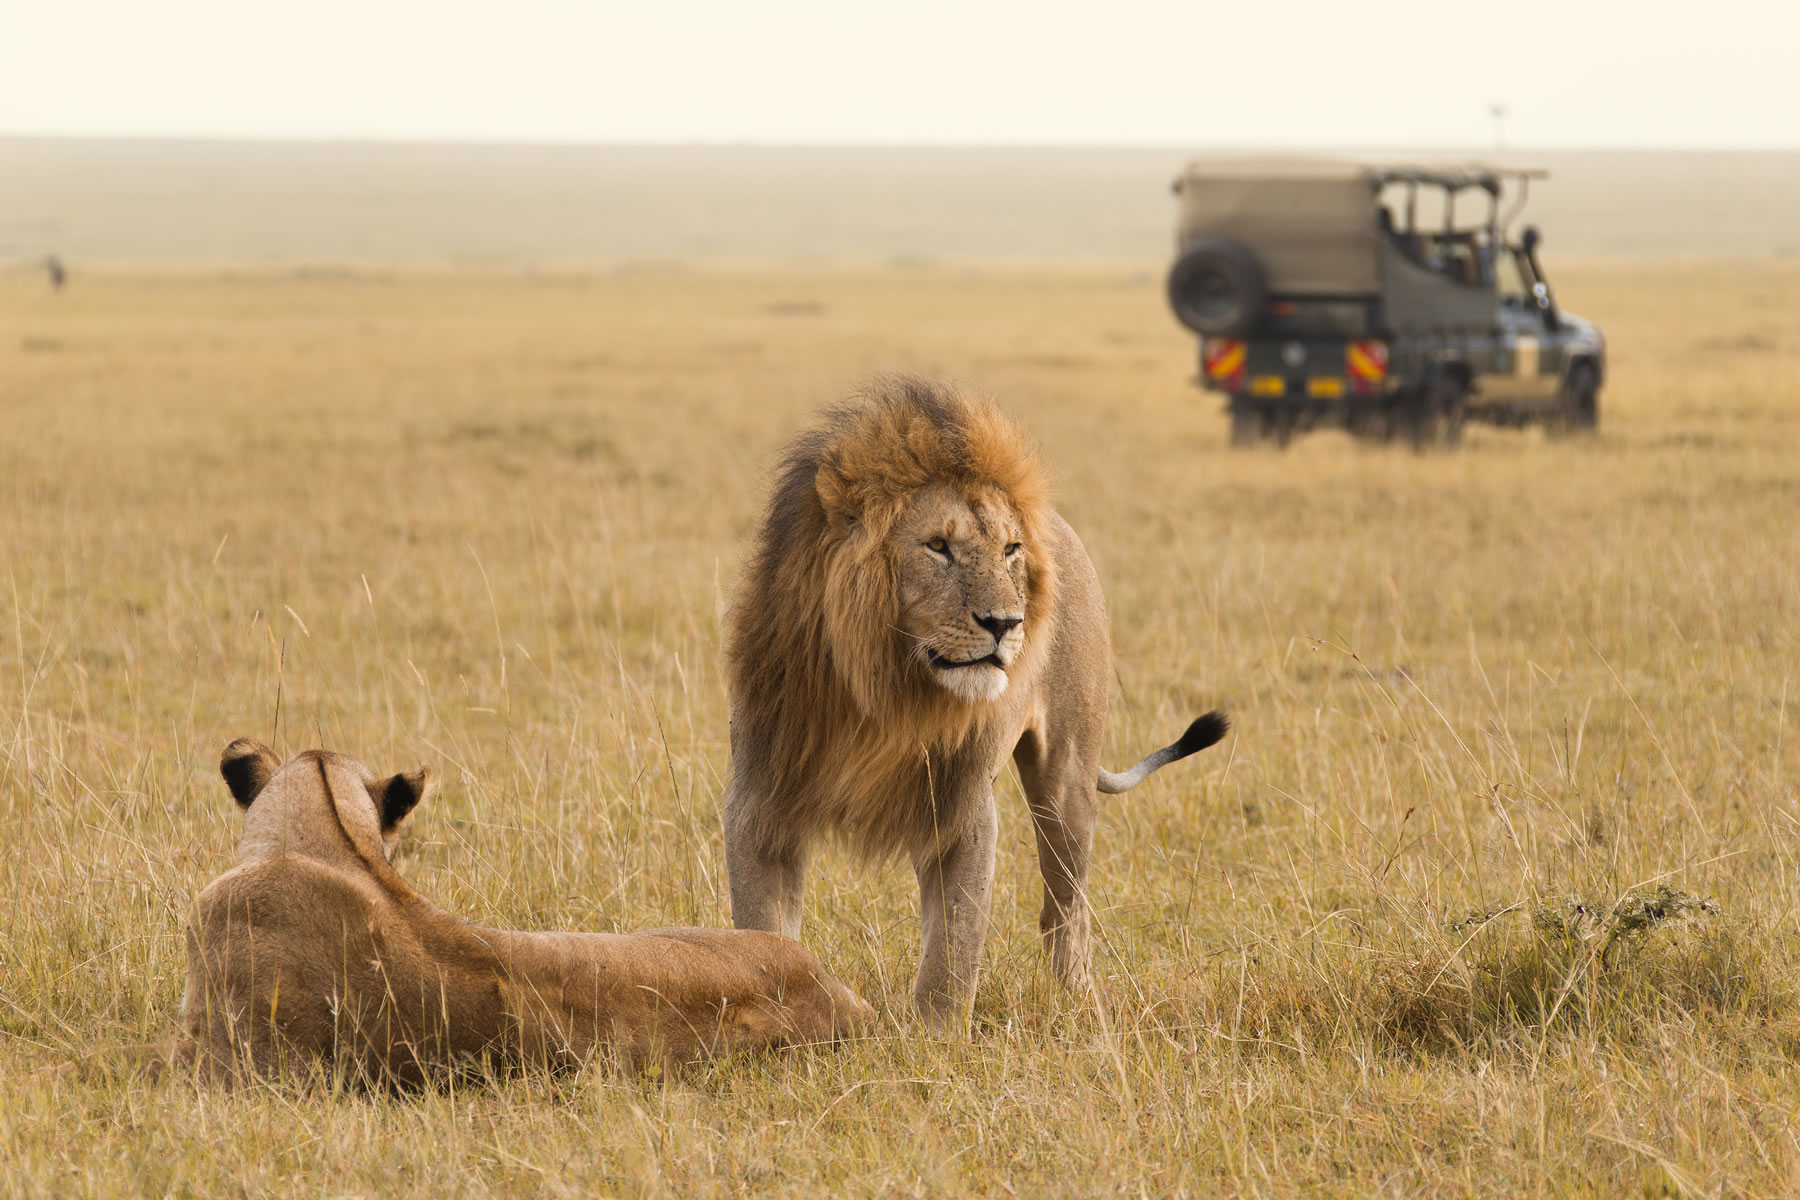 A lion and lioness in the Masai Mara